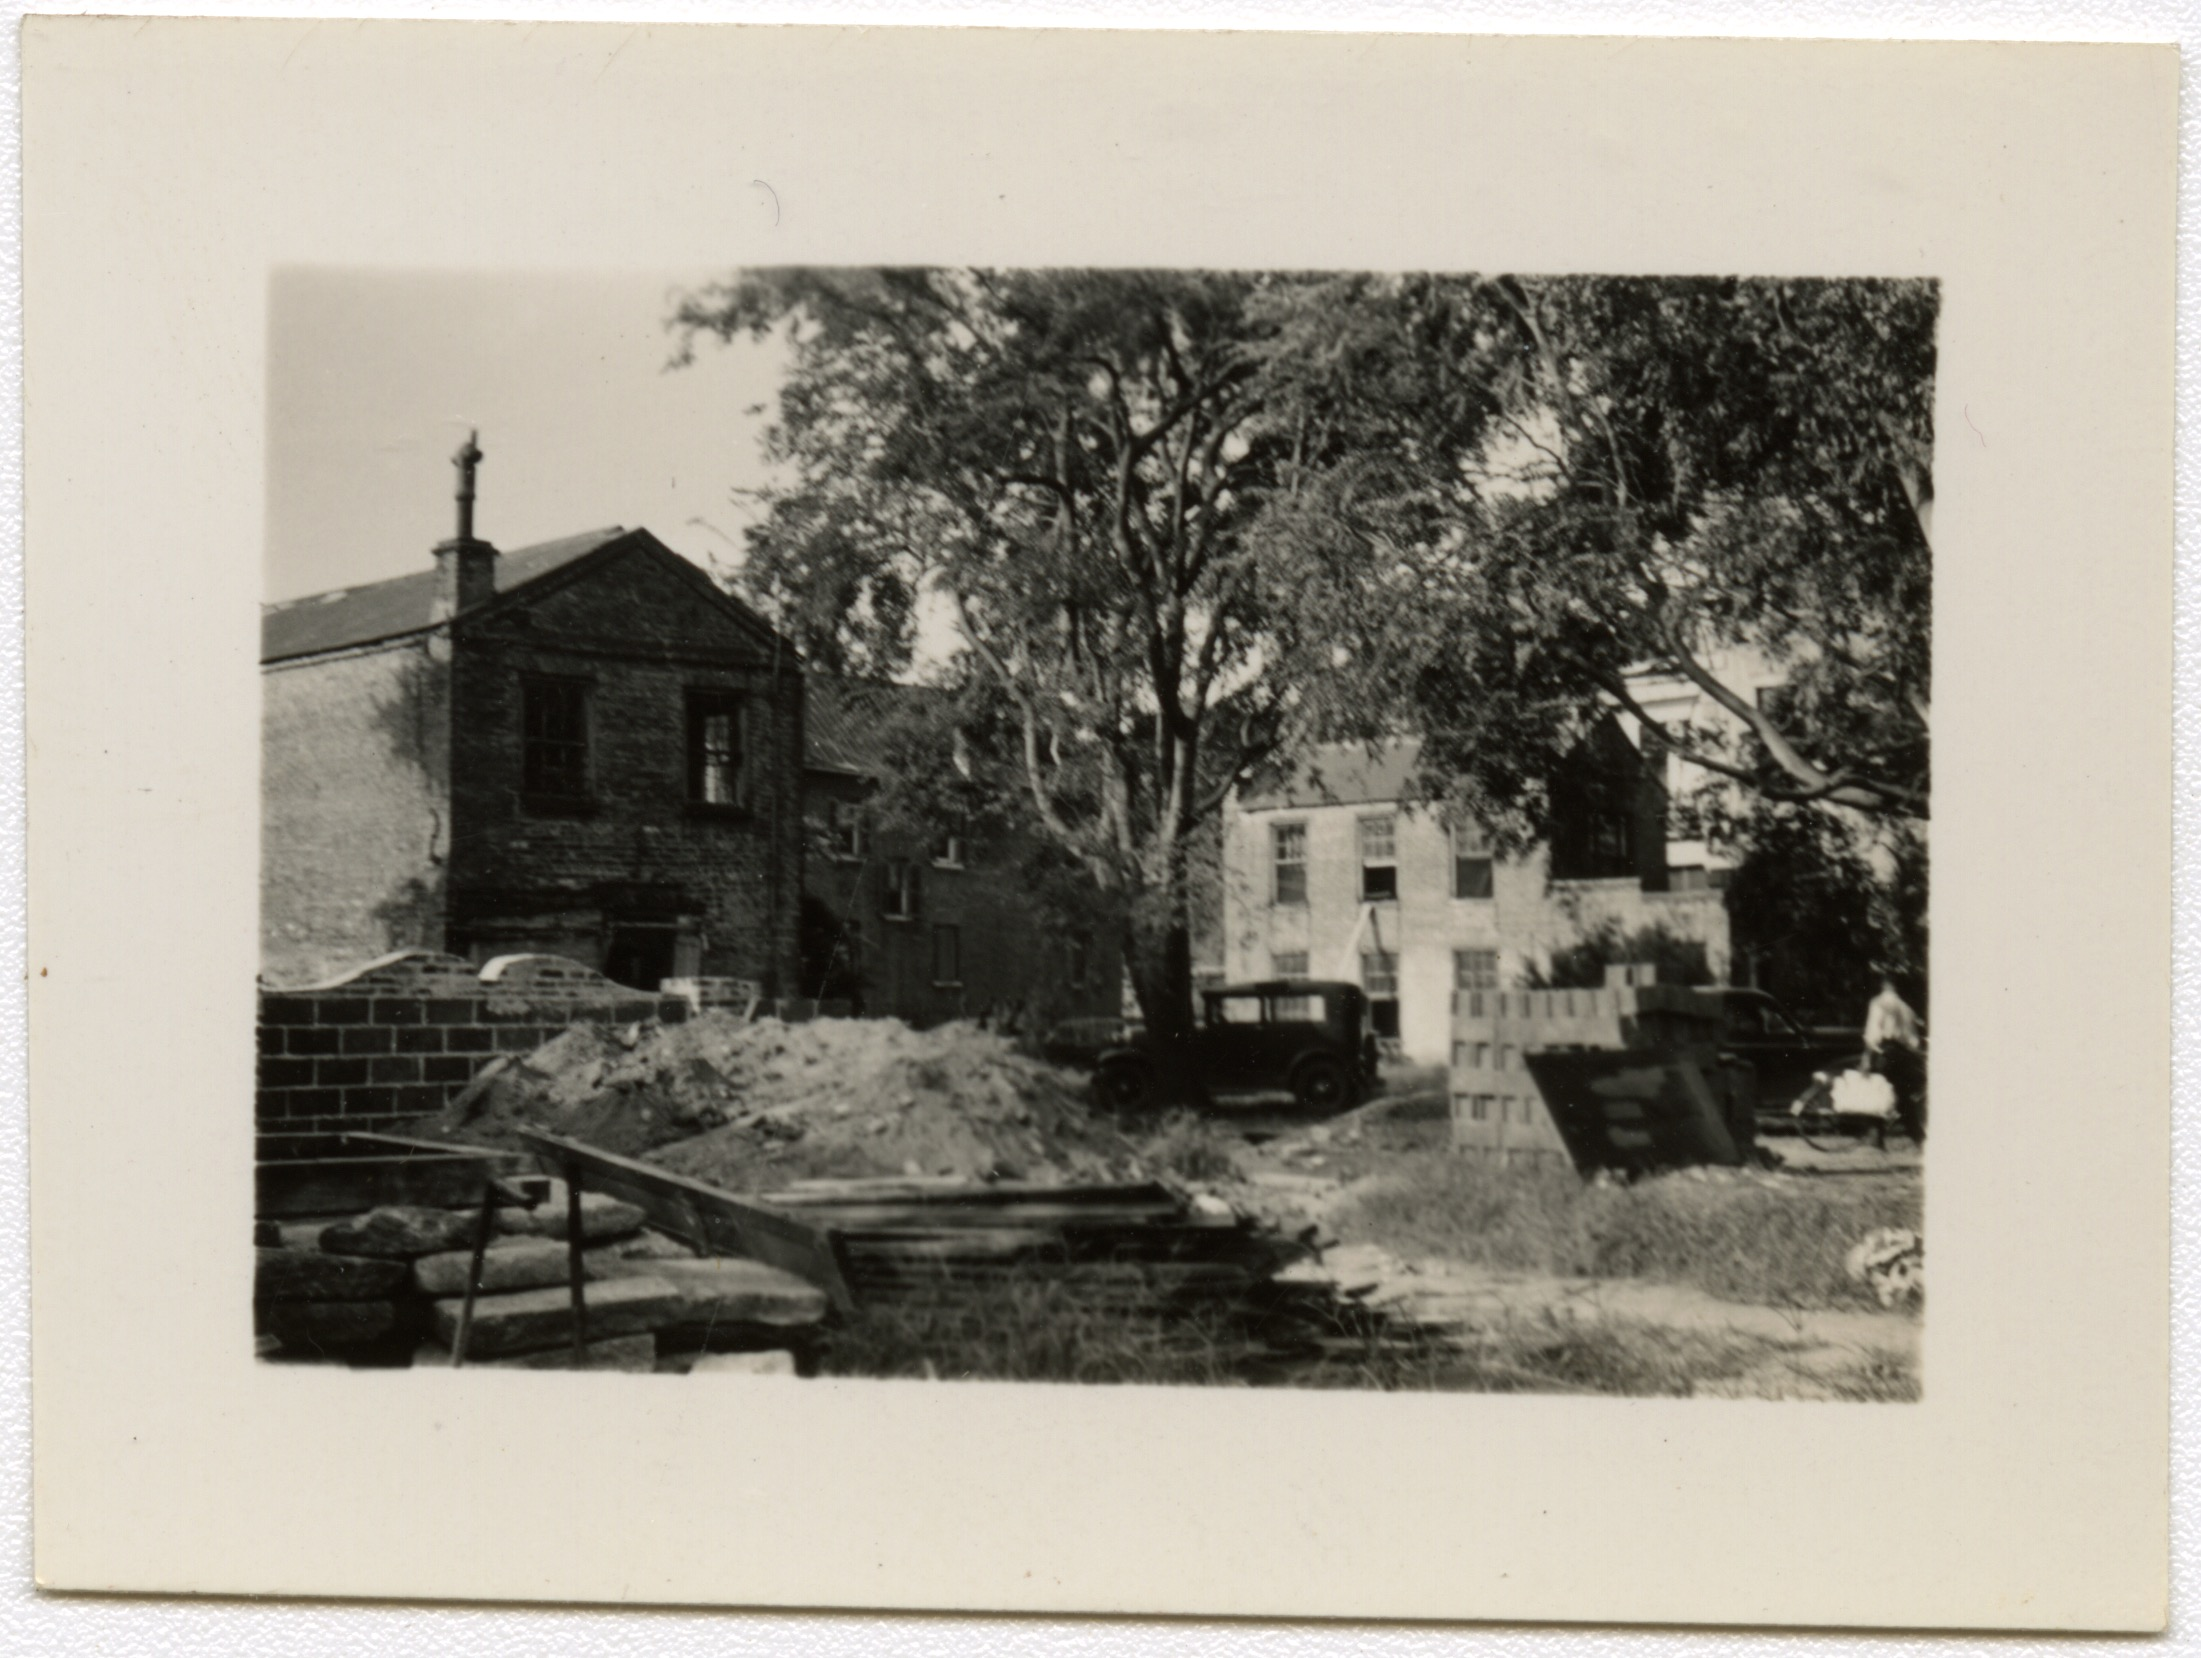 Index Card Survey of 54-62 Hasell Street, additional photos